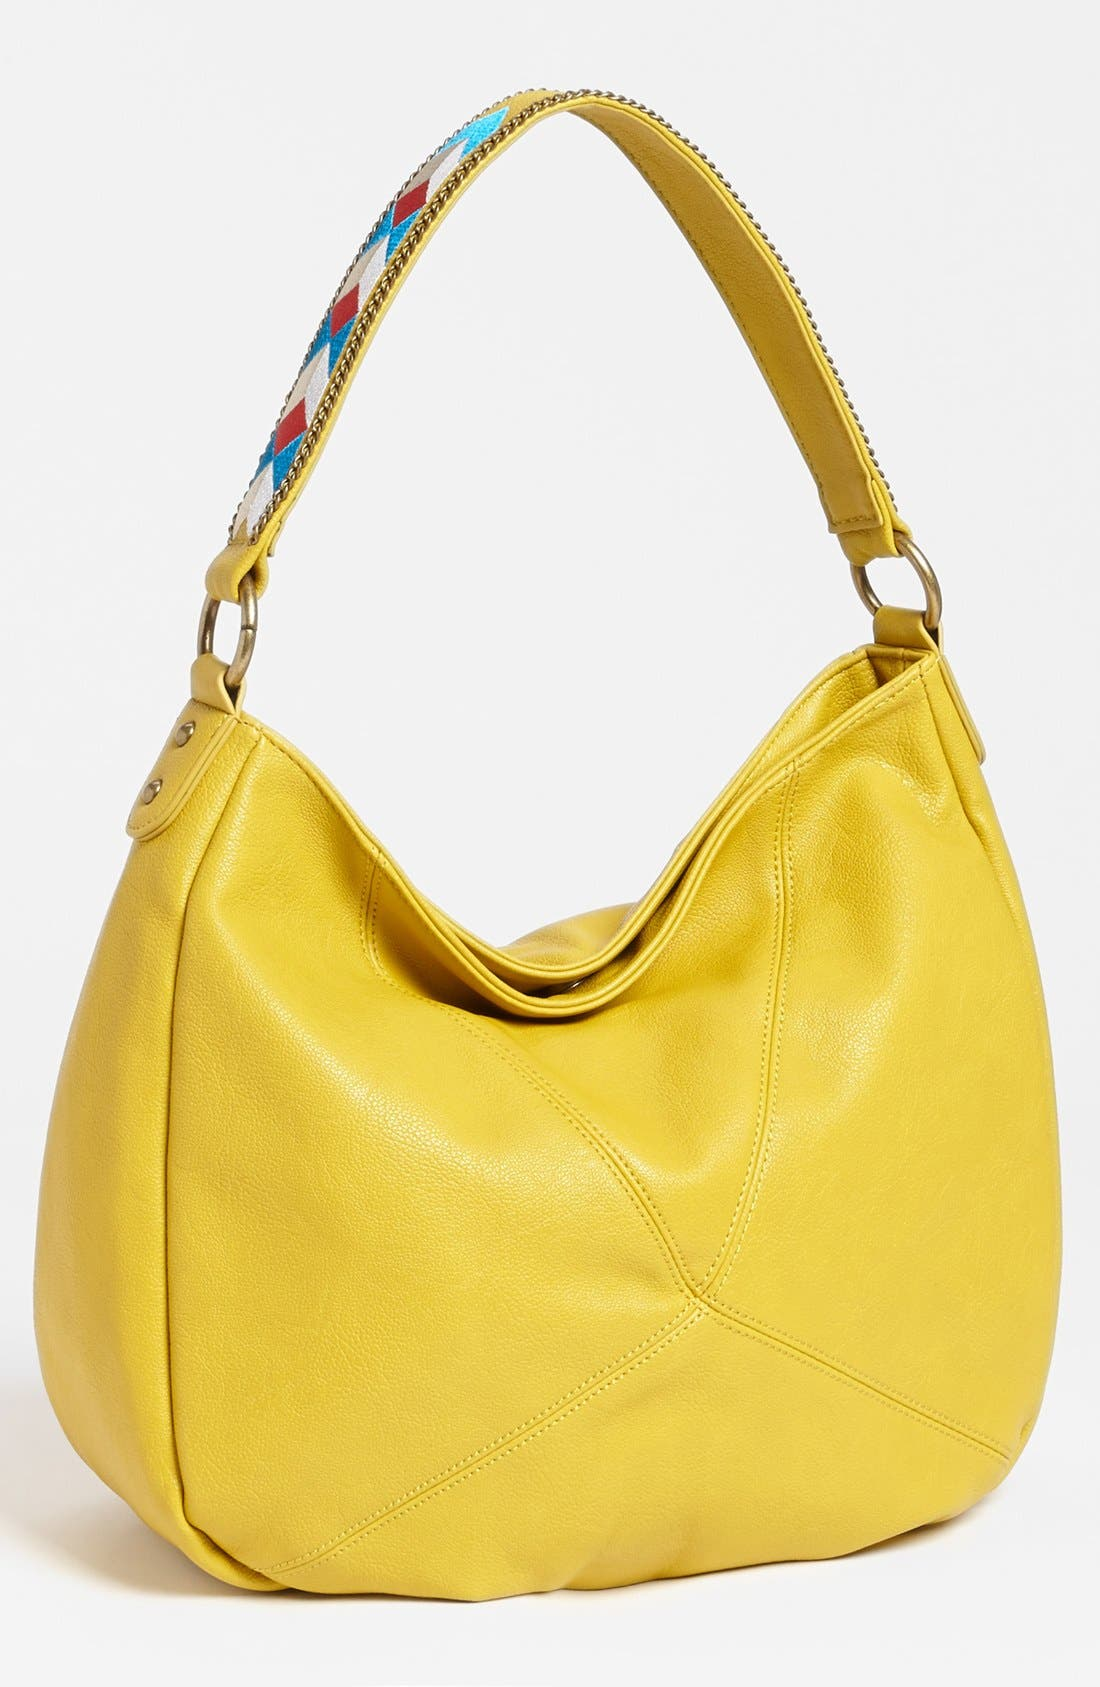 Main Image - Jessica Simpson 'Zulu' Faux Leather Hobo